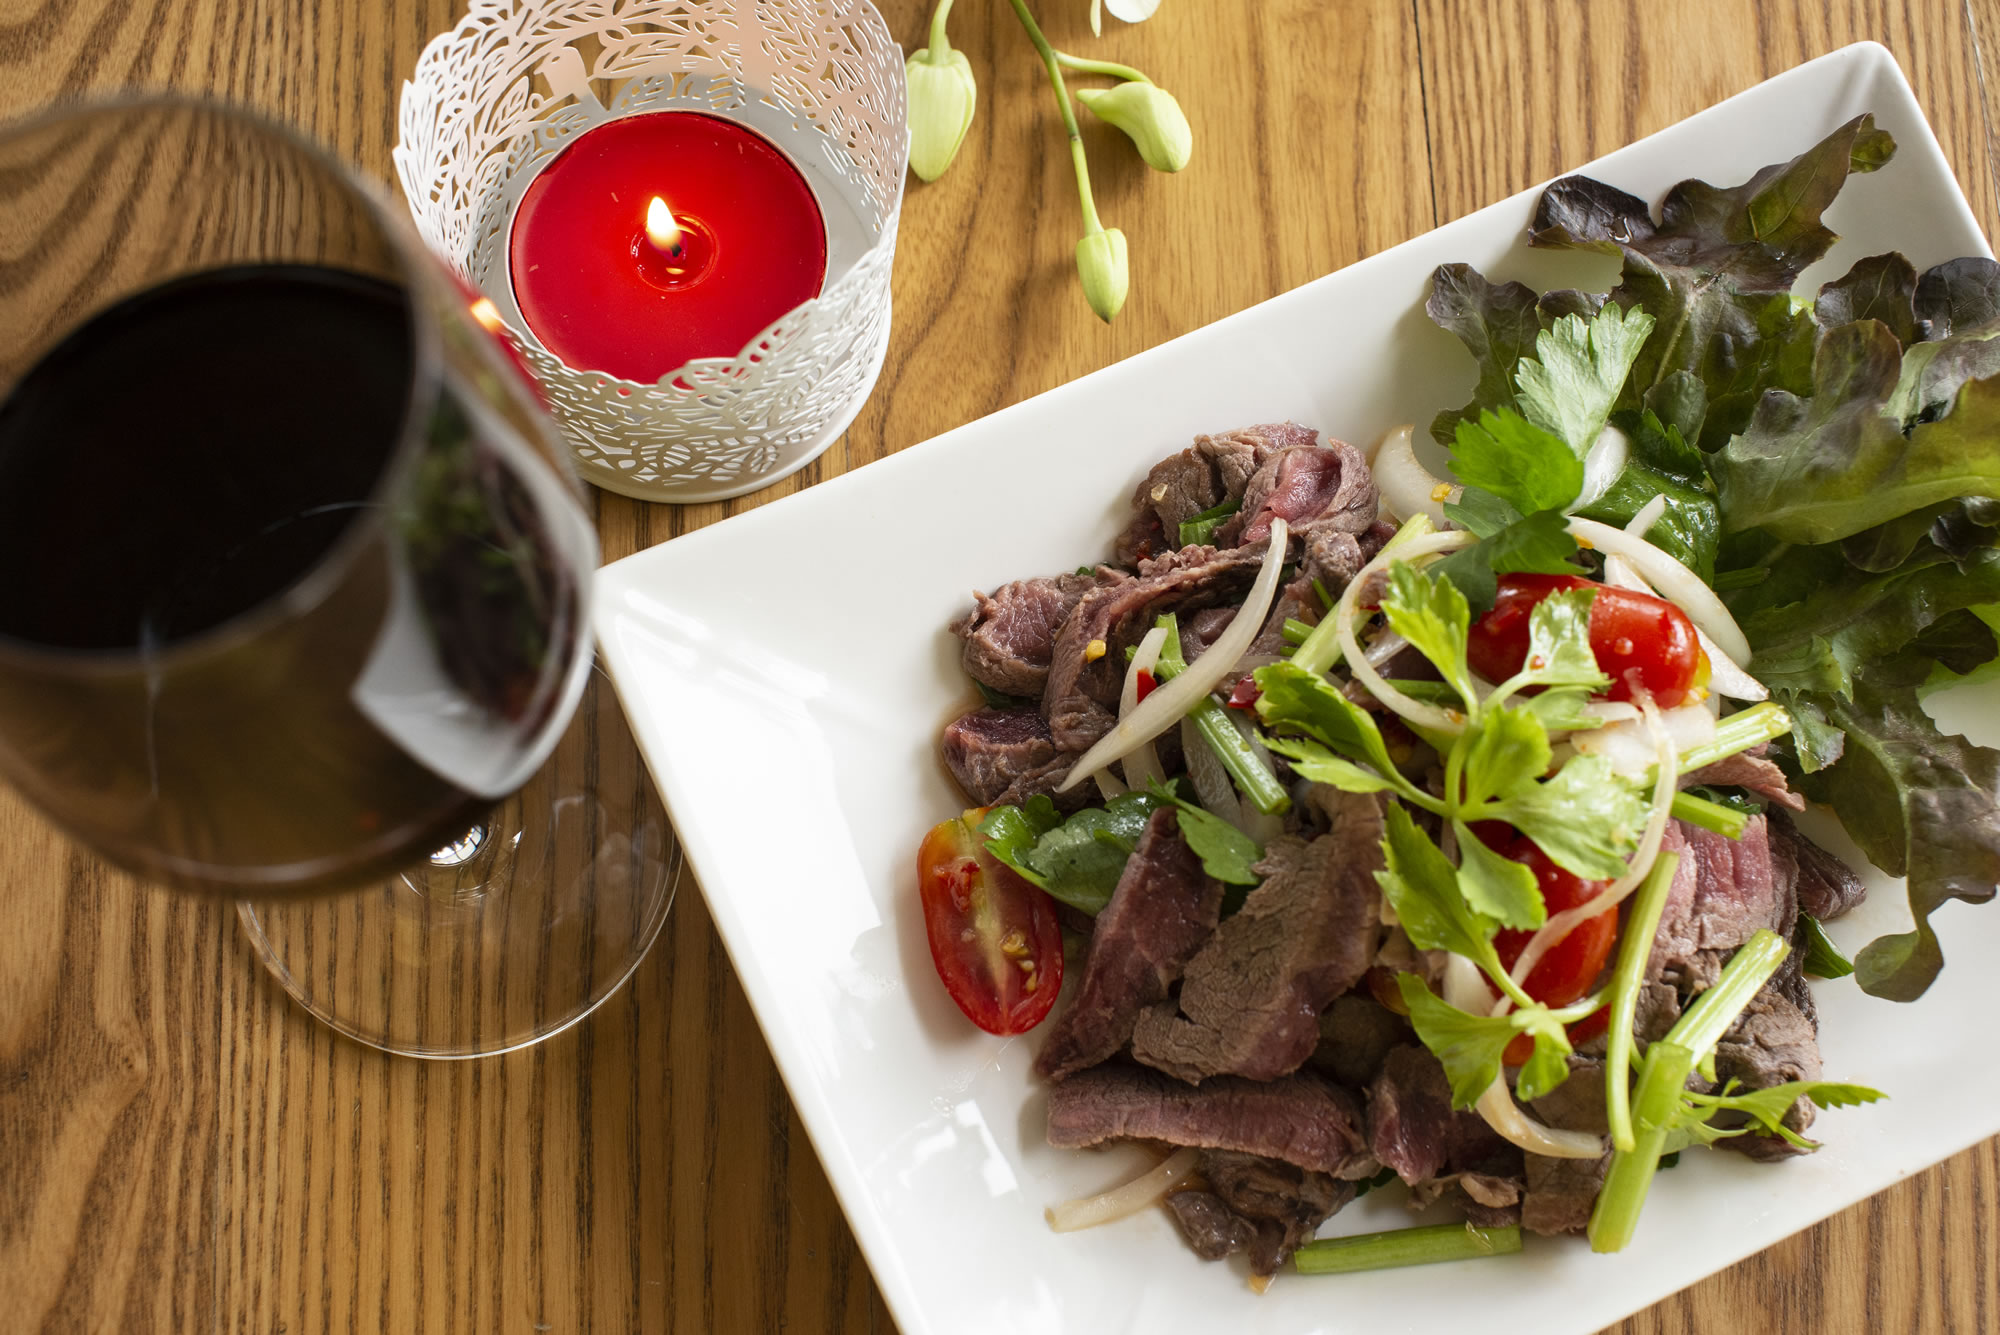 YUM NEUA - BEEF SALAD -  Thinly sliced grilled beef seasoned with chillies, chopped onions and lemon juice.